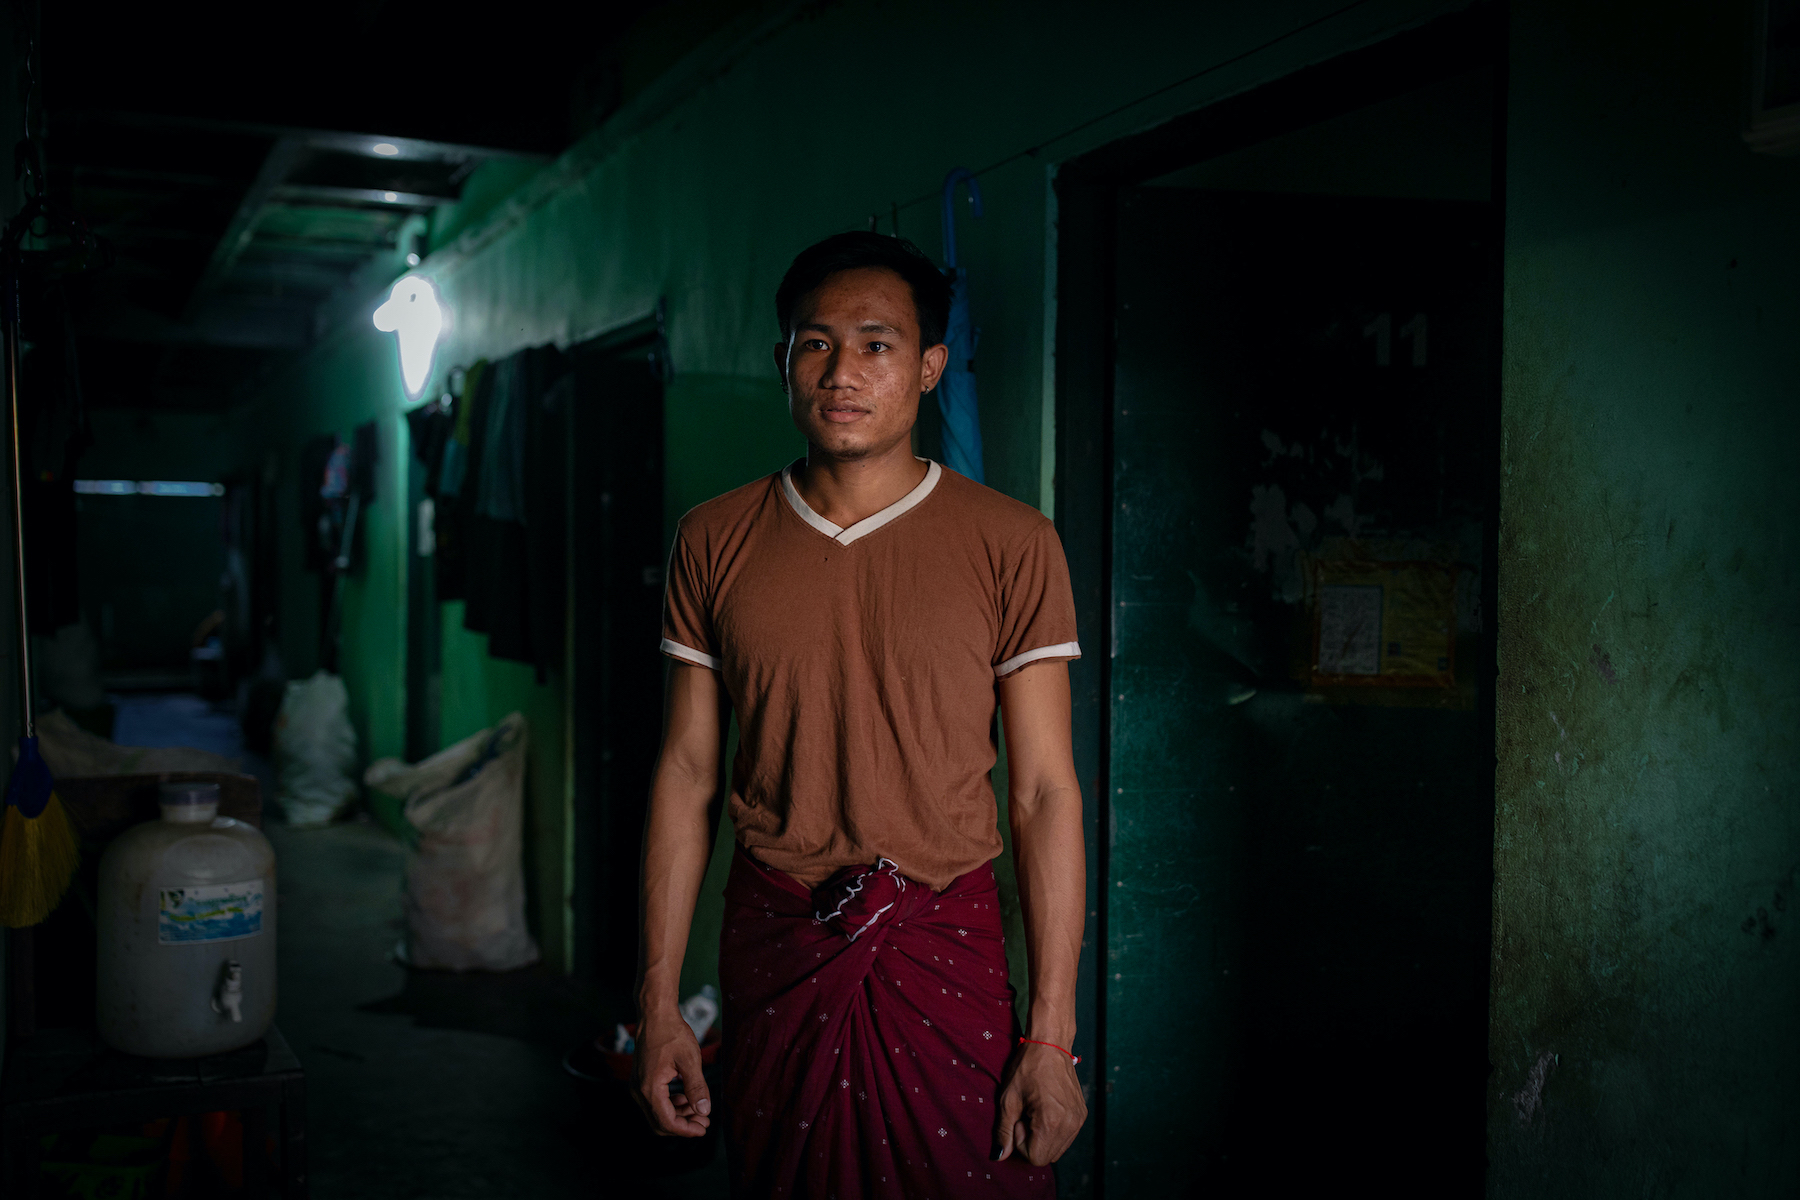 Factory worker Ko Thant Zaw Win stands in front of his dormitory room in Yangon's Hlaing Tharyar Township, which he shares with four other roommates, on October 26. Such cramped conditions, common in worker hostels across the overcrowded and industrial township,  have made factory shutdowns and stay-at-home orders harder to bear for laid-off workers, putting them at greater risk of mental health problems. (Hkun Lat | Frontier)